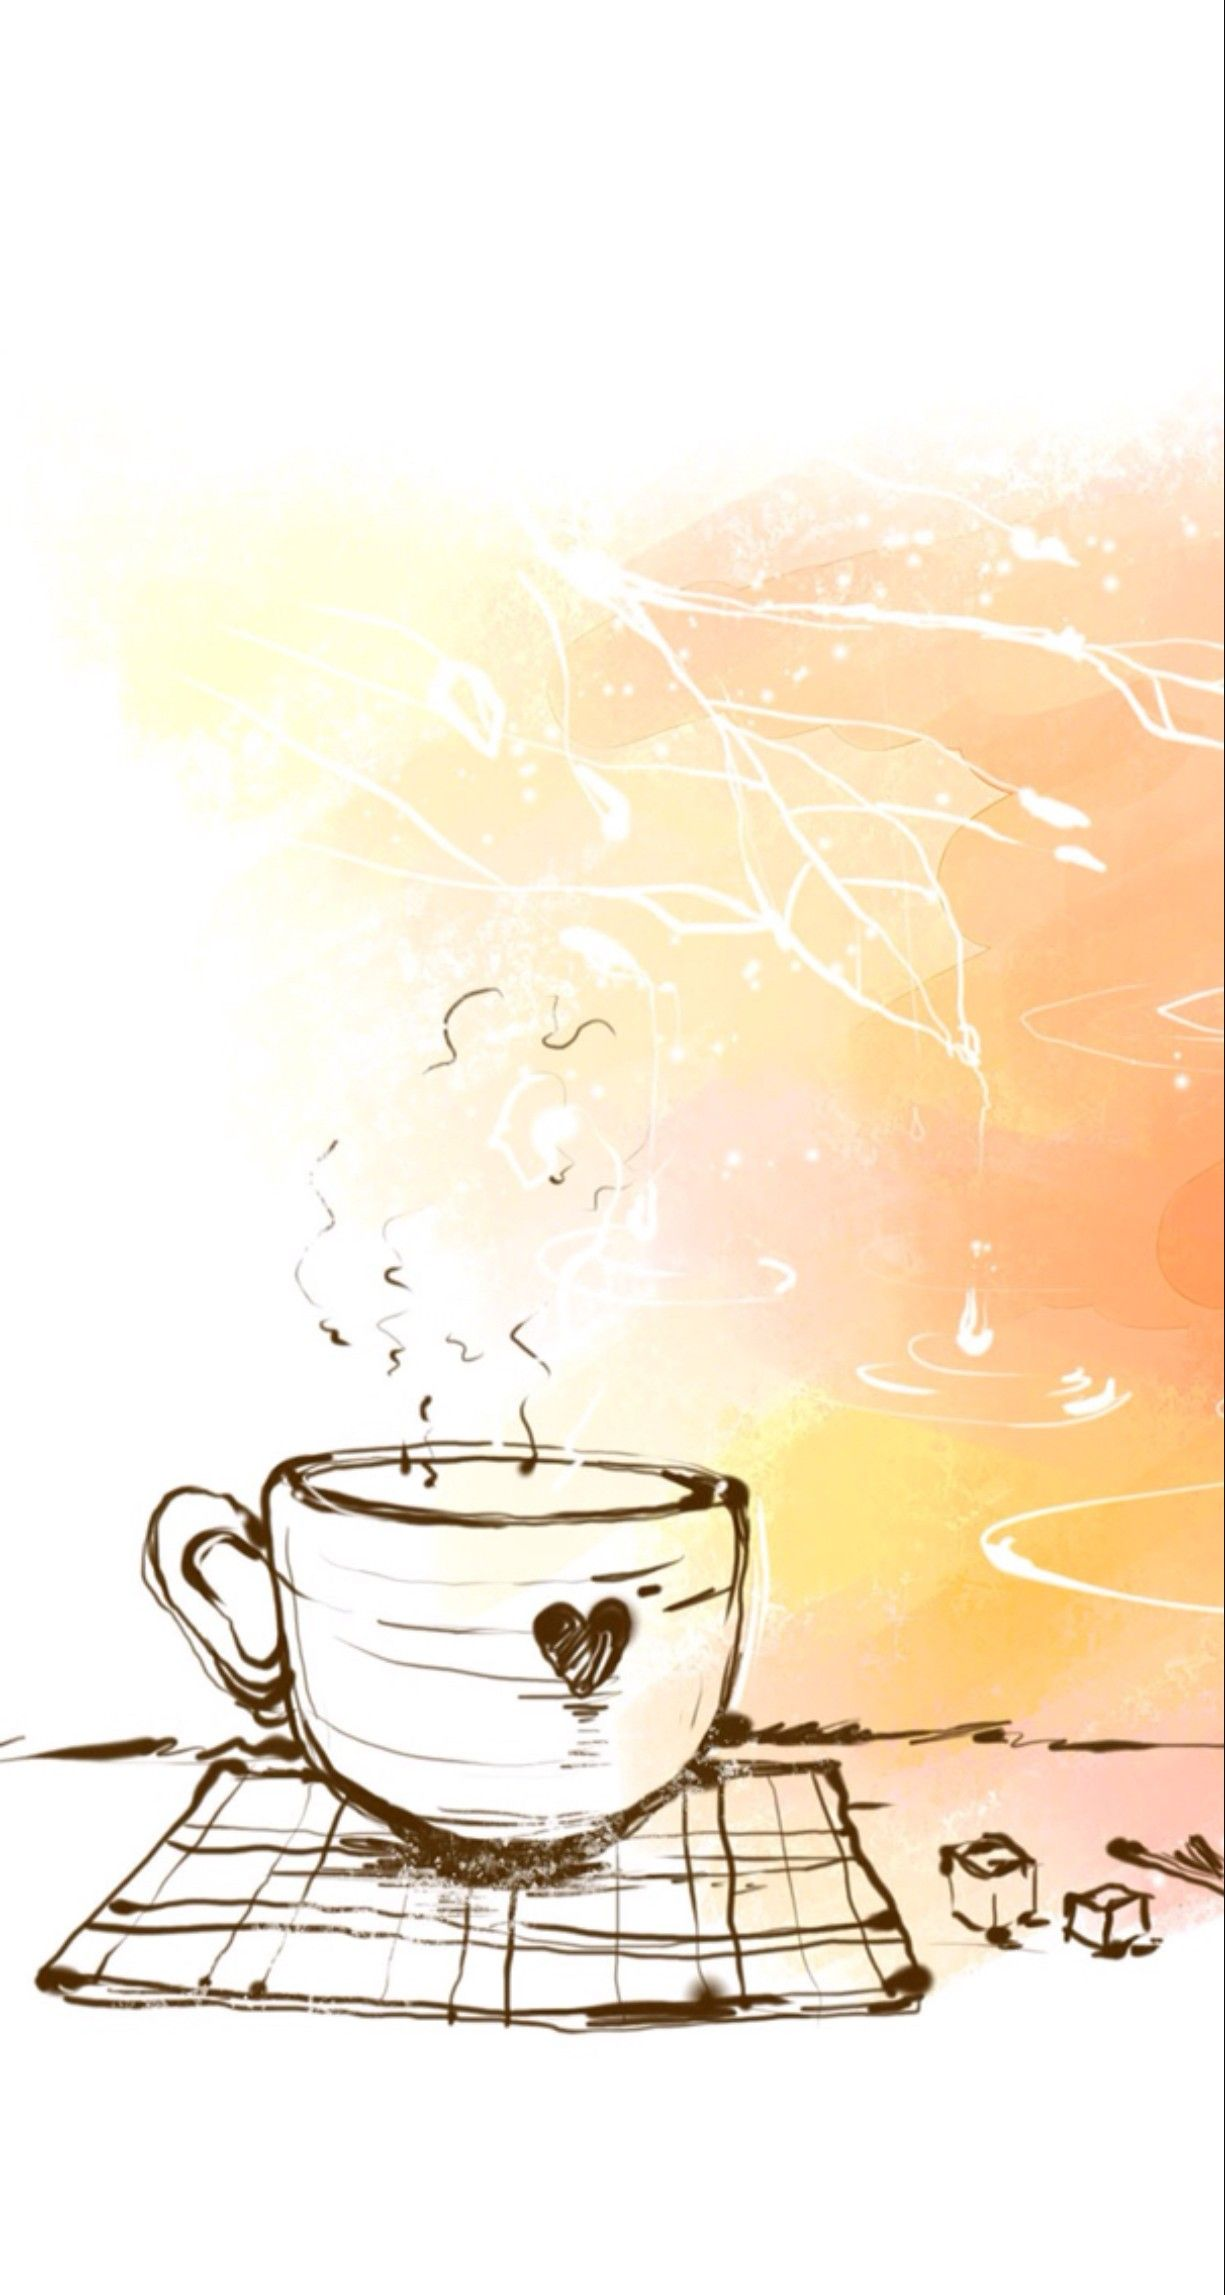 Pin by Mayra on Wallpapers Coffee wallpaper iphone